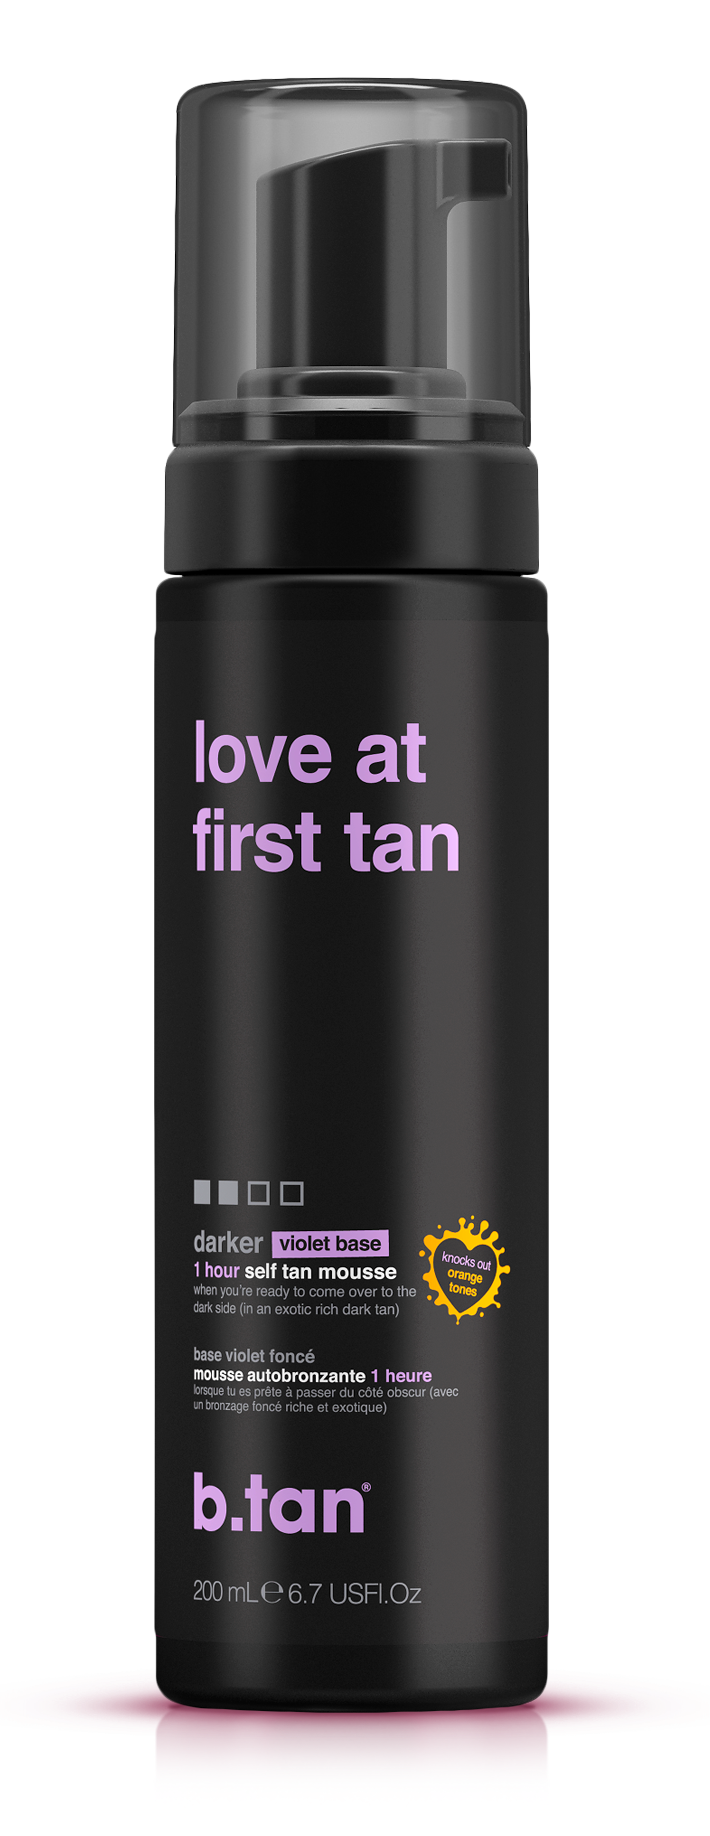 love at first tan self tan mousse